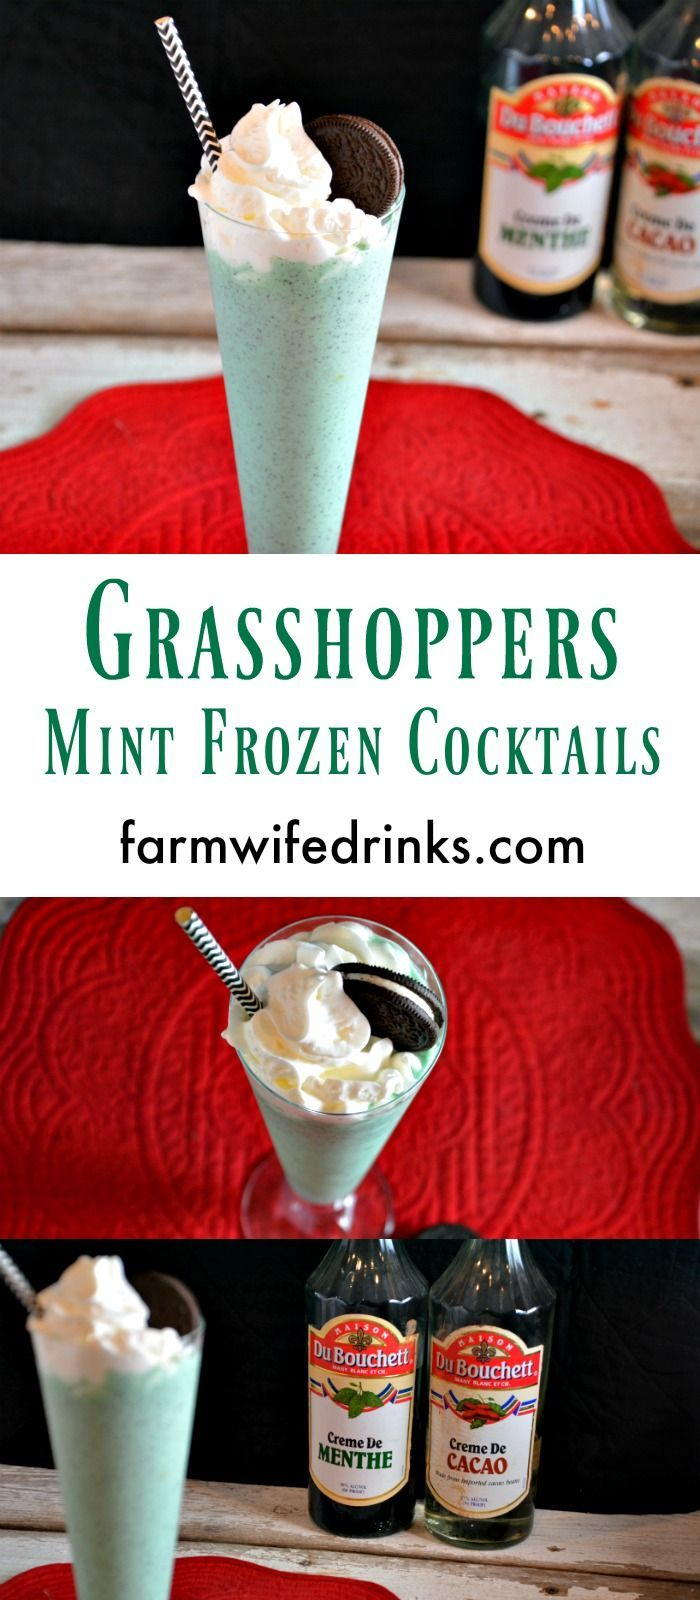 Grasshoppers are a chocolate mint frozen mixed drink that is perfect for a holiday dessert or after dinner drink.